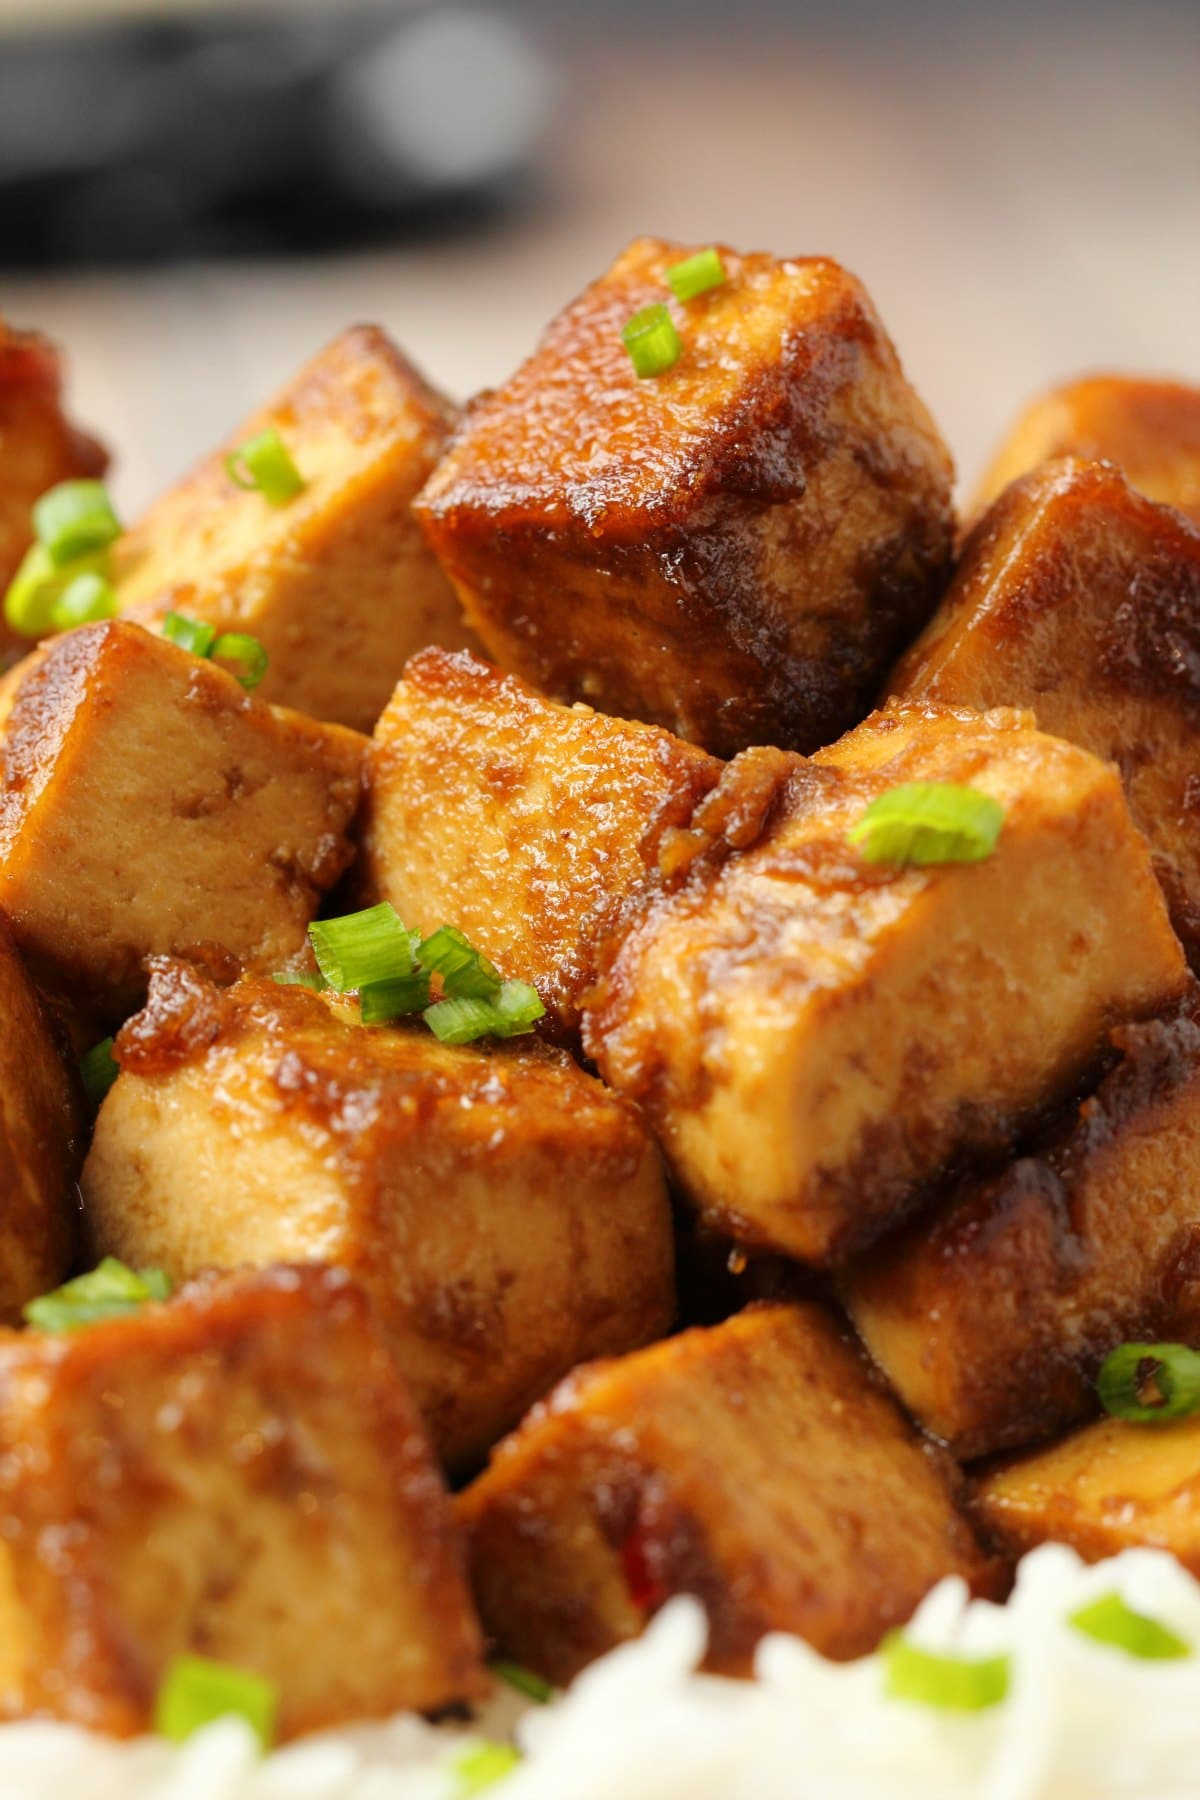 Marinated tofu topped with chopped chives.